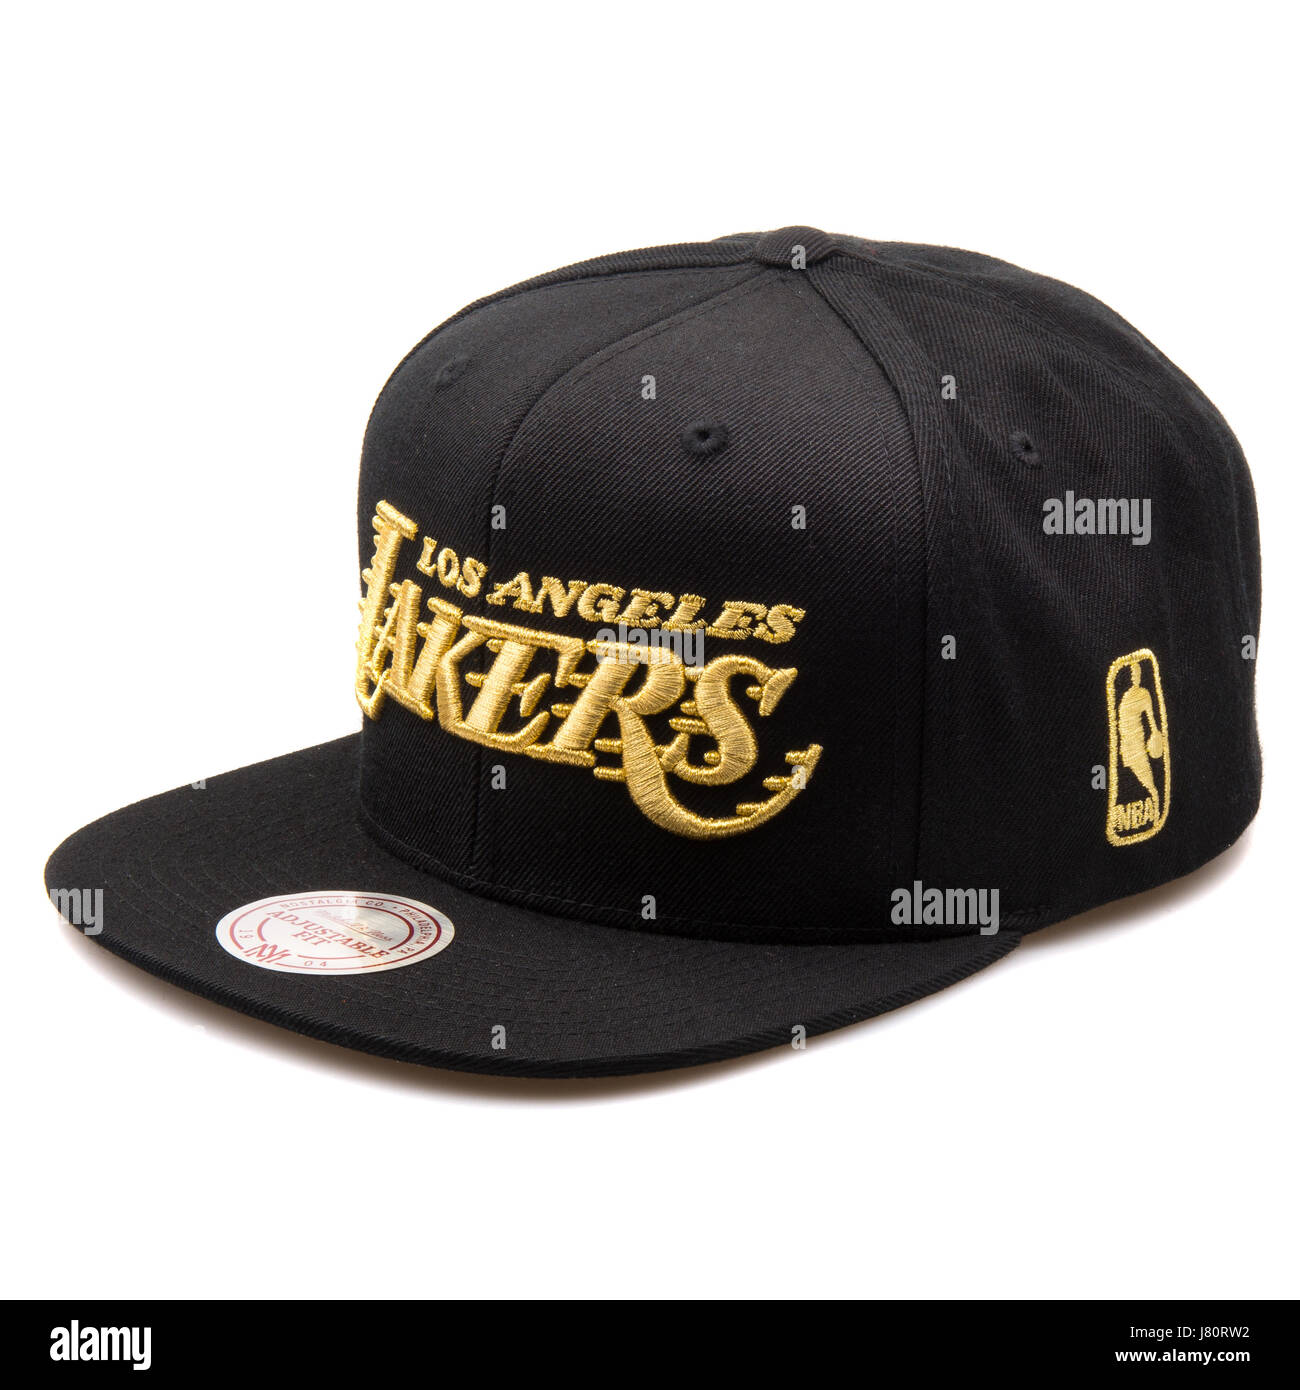 12807de5bfe72d Mitchell & Ness Black and Gold Los Angeles Lakers Cap Stock Photo ...